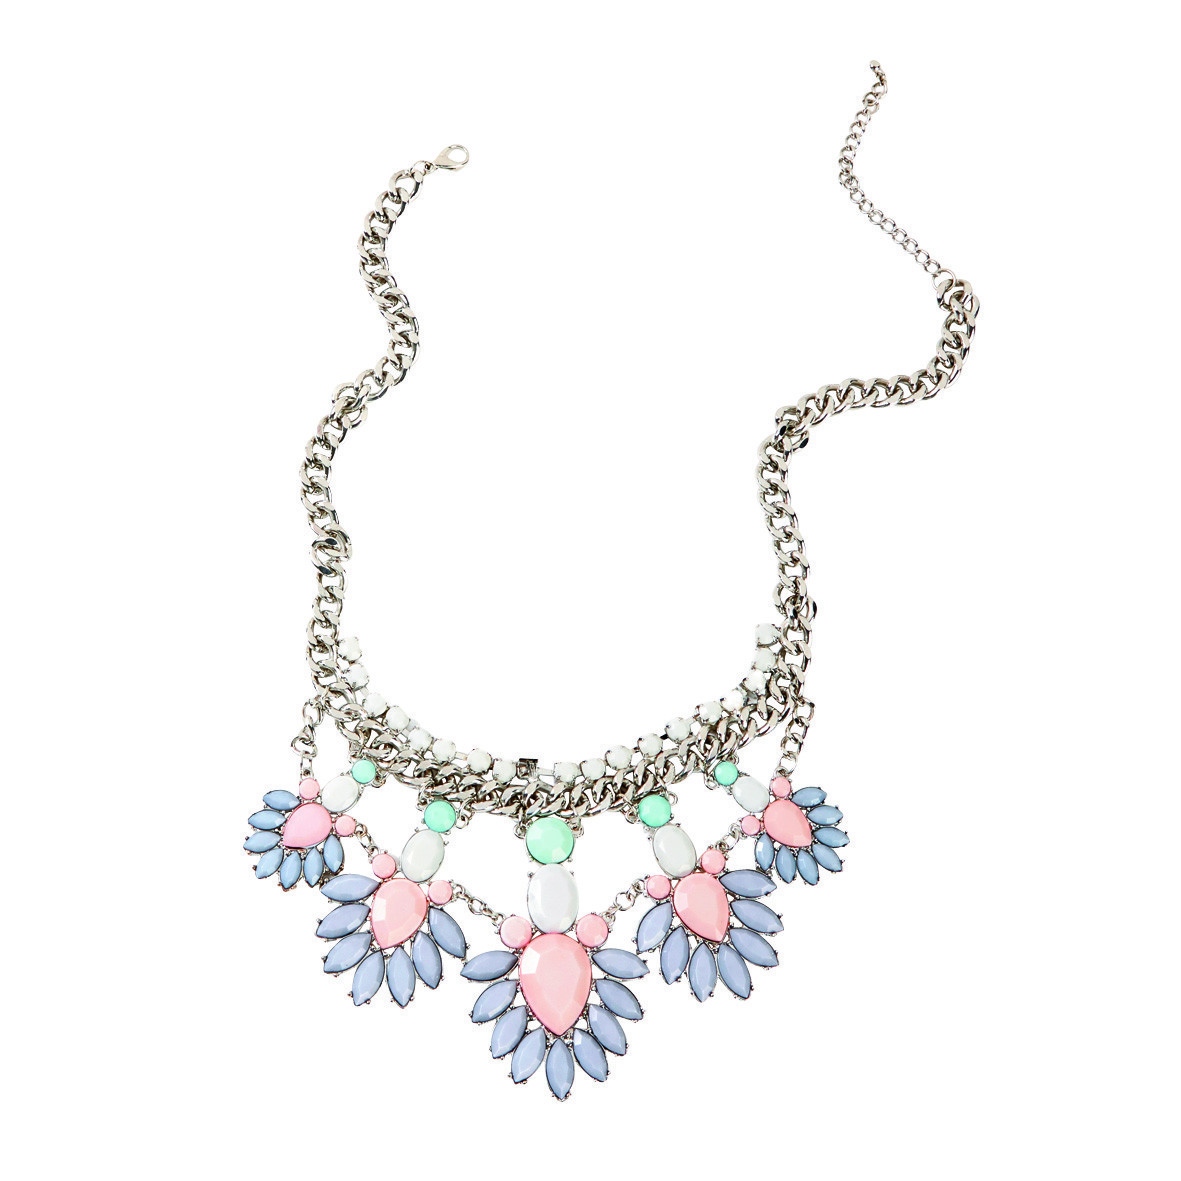 The Warehouse Debut Garden Pastel Necklace $25